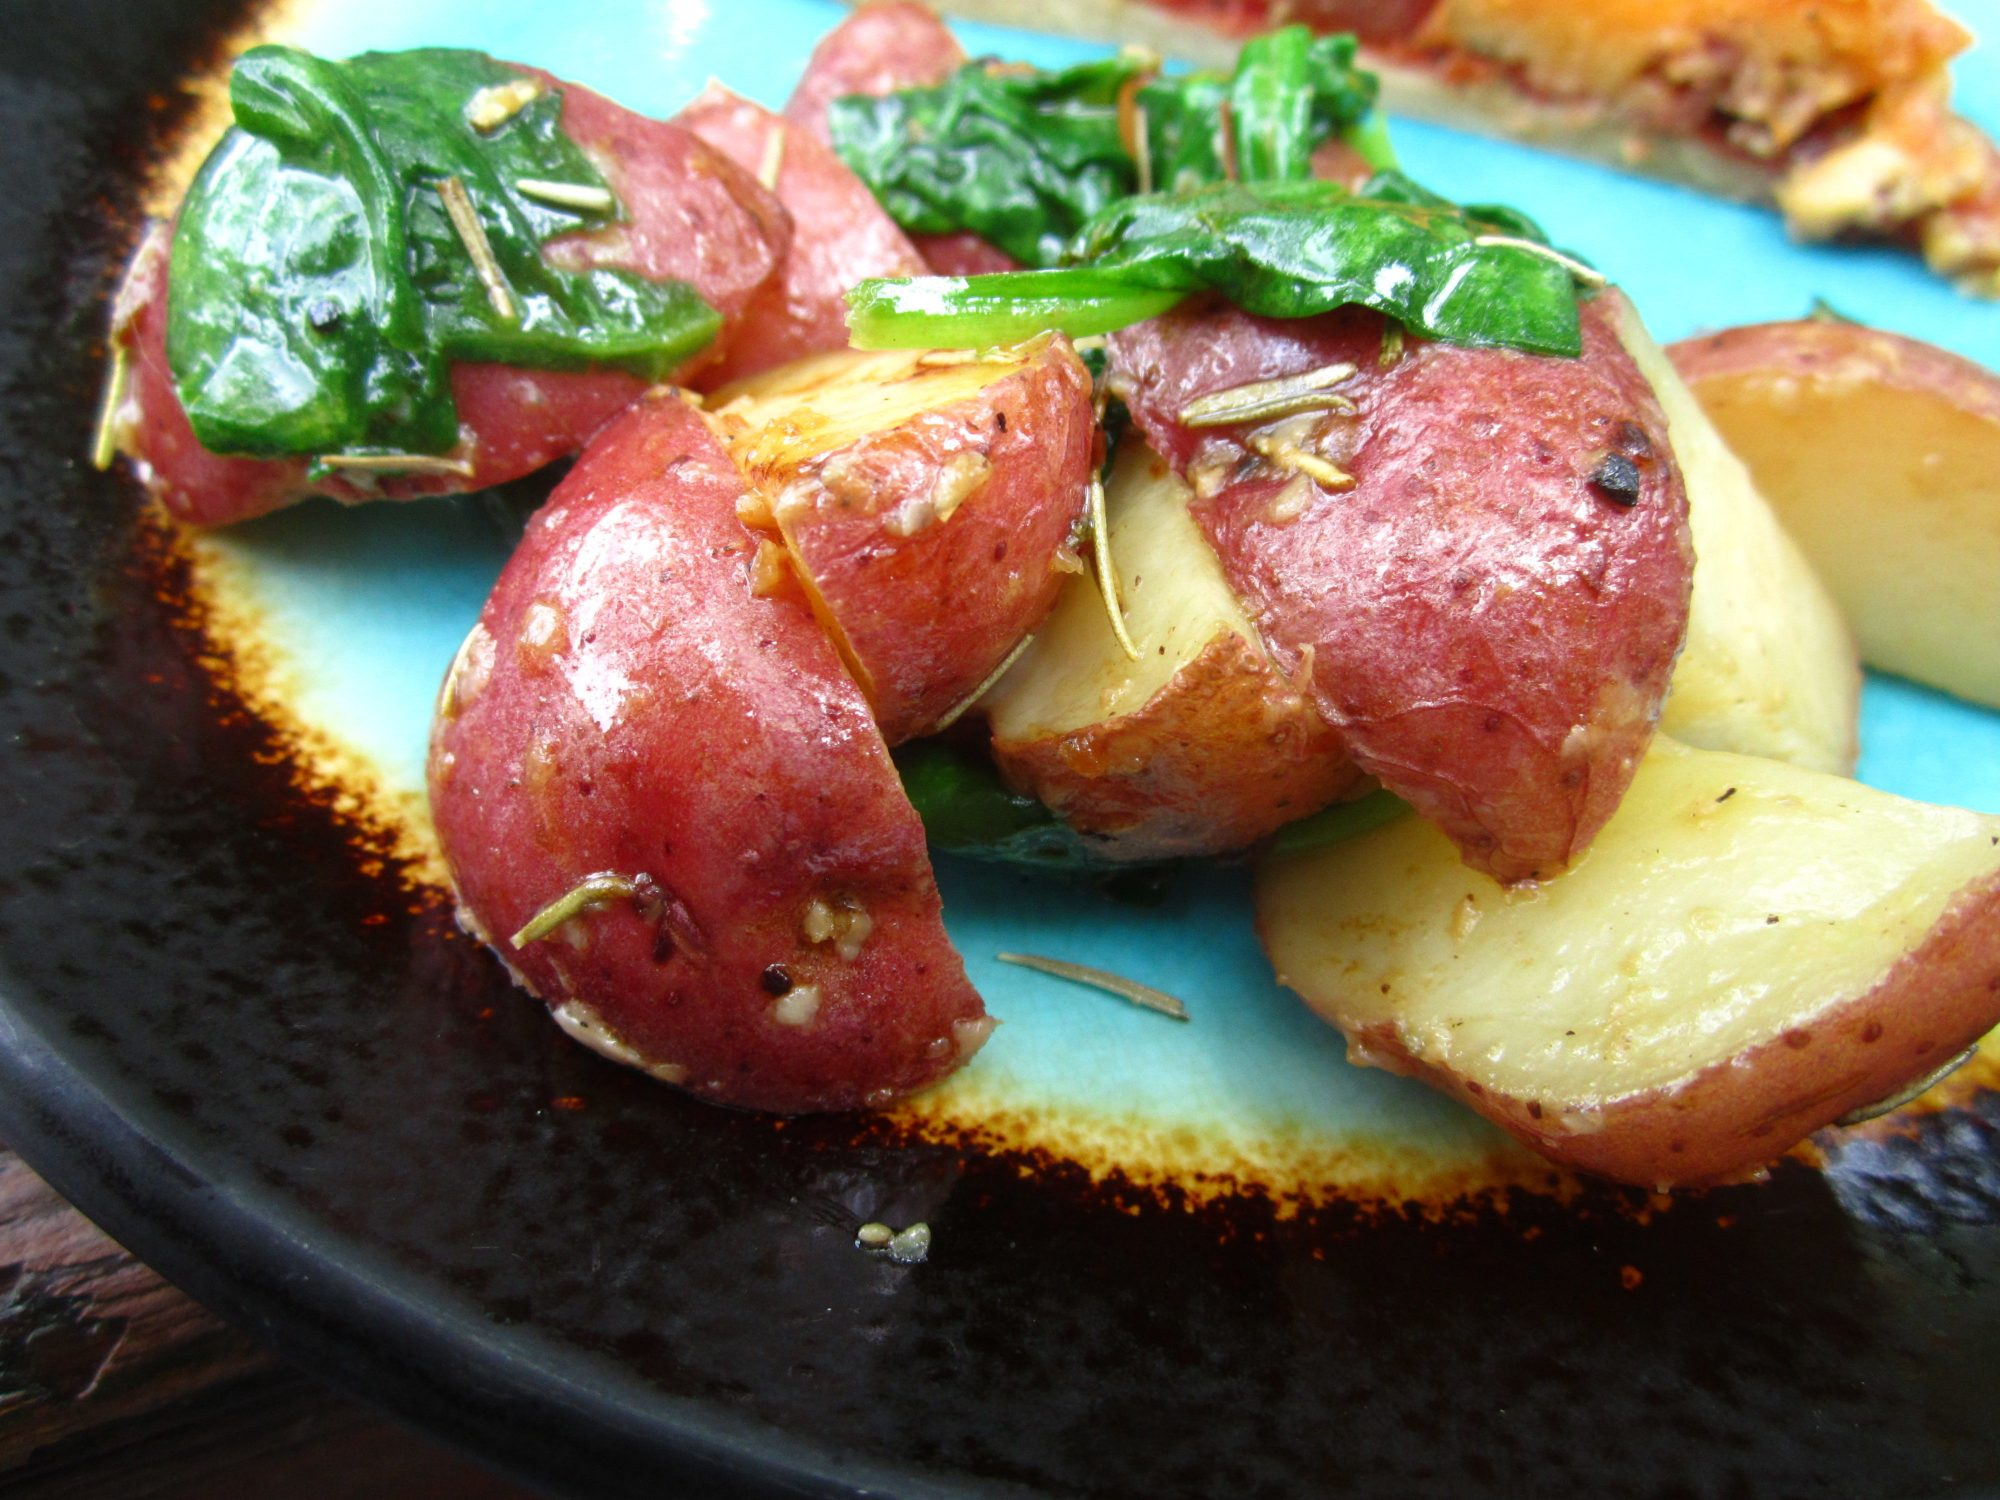 Roasted Potatoes with Greens by pomplemousse